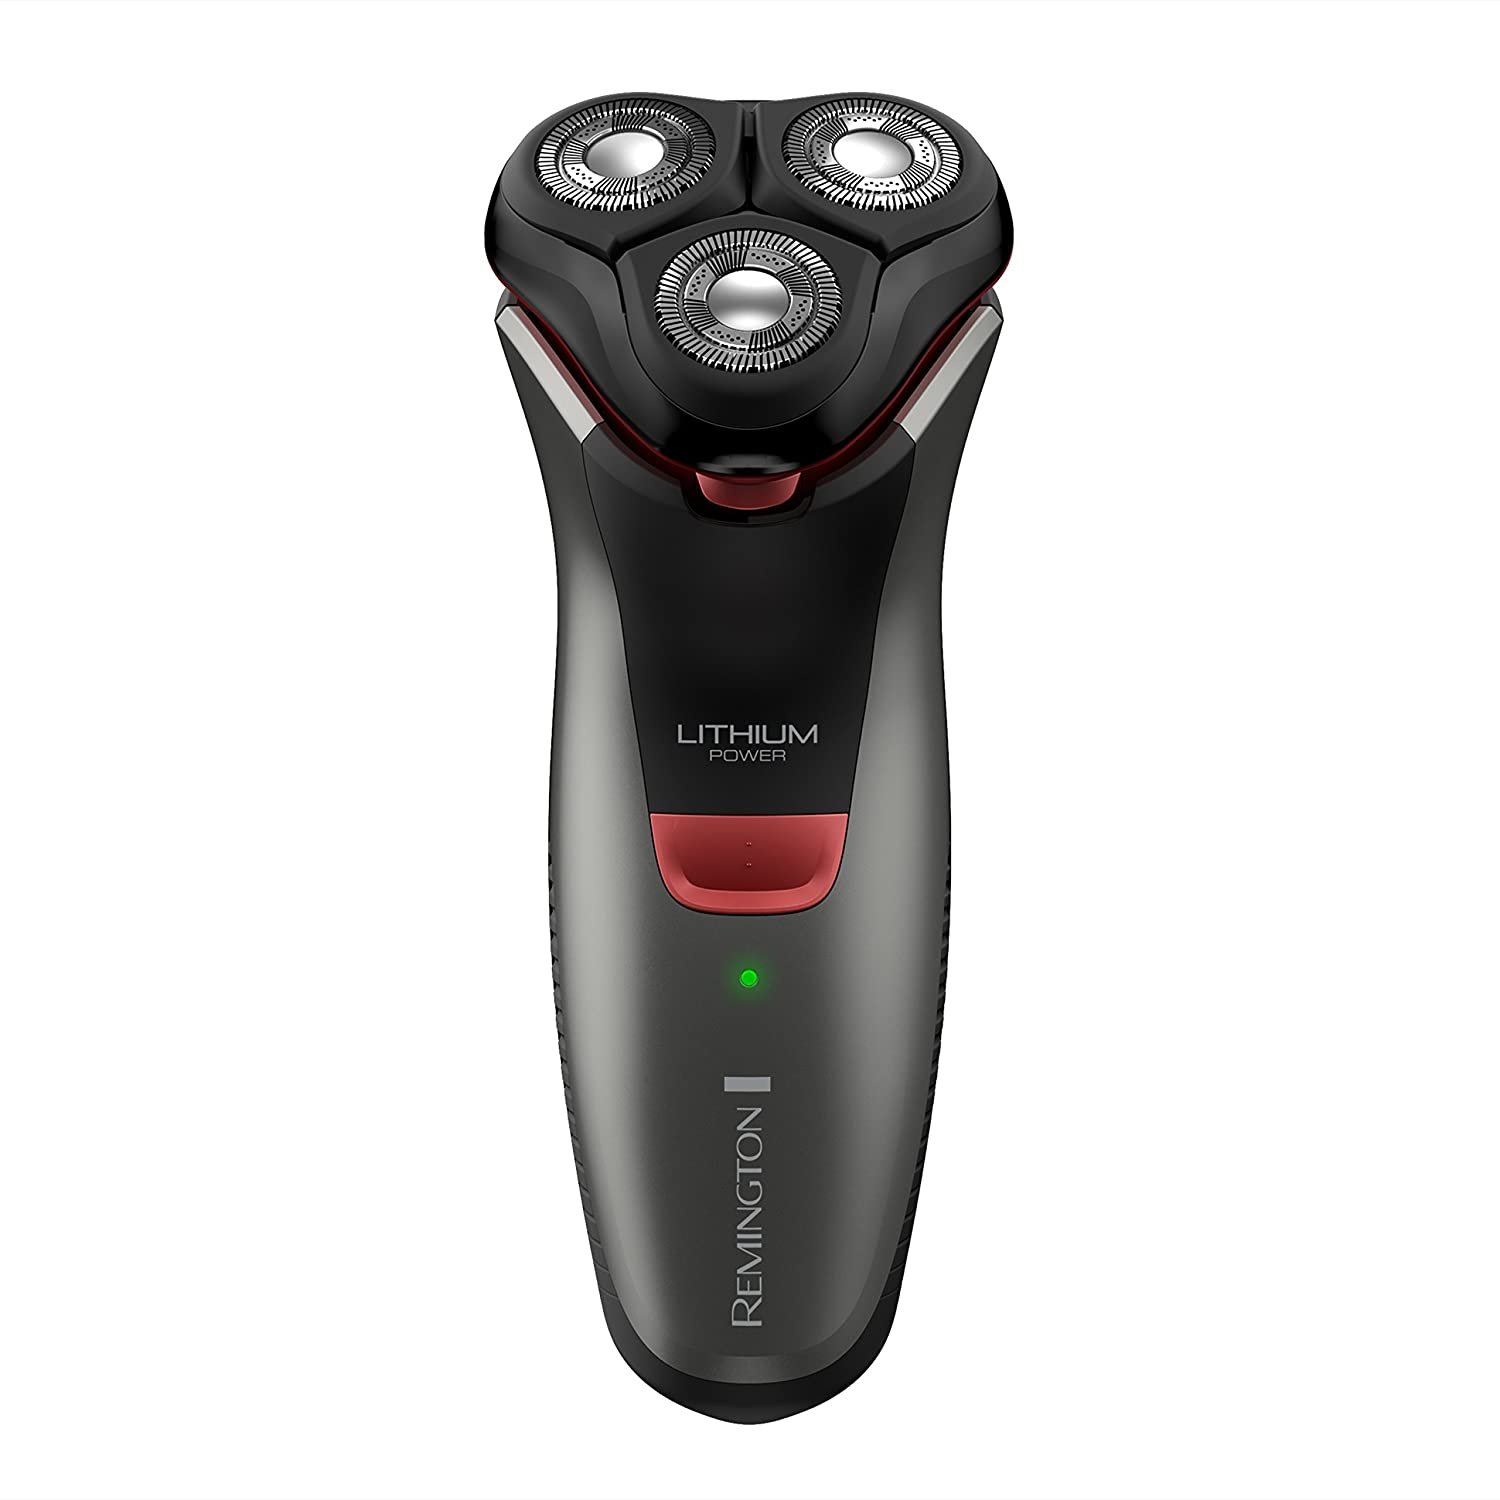 Remington R4000 Series Electric Rotary Shaver, Fully Washable, Black Red, PR1340 Renewed